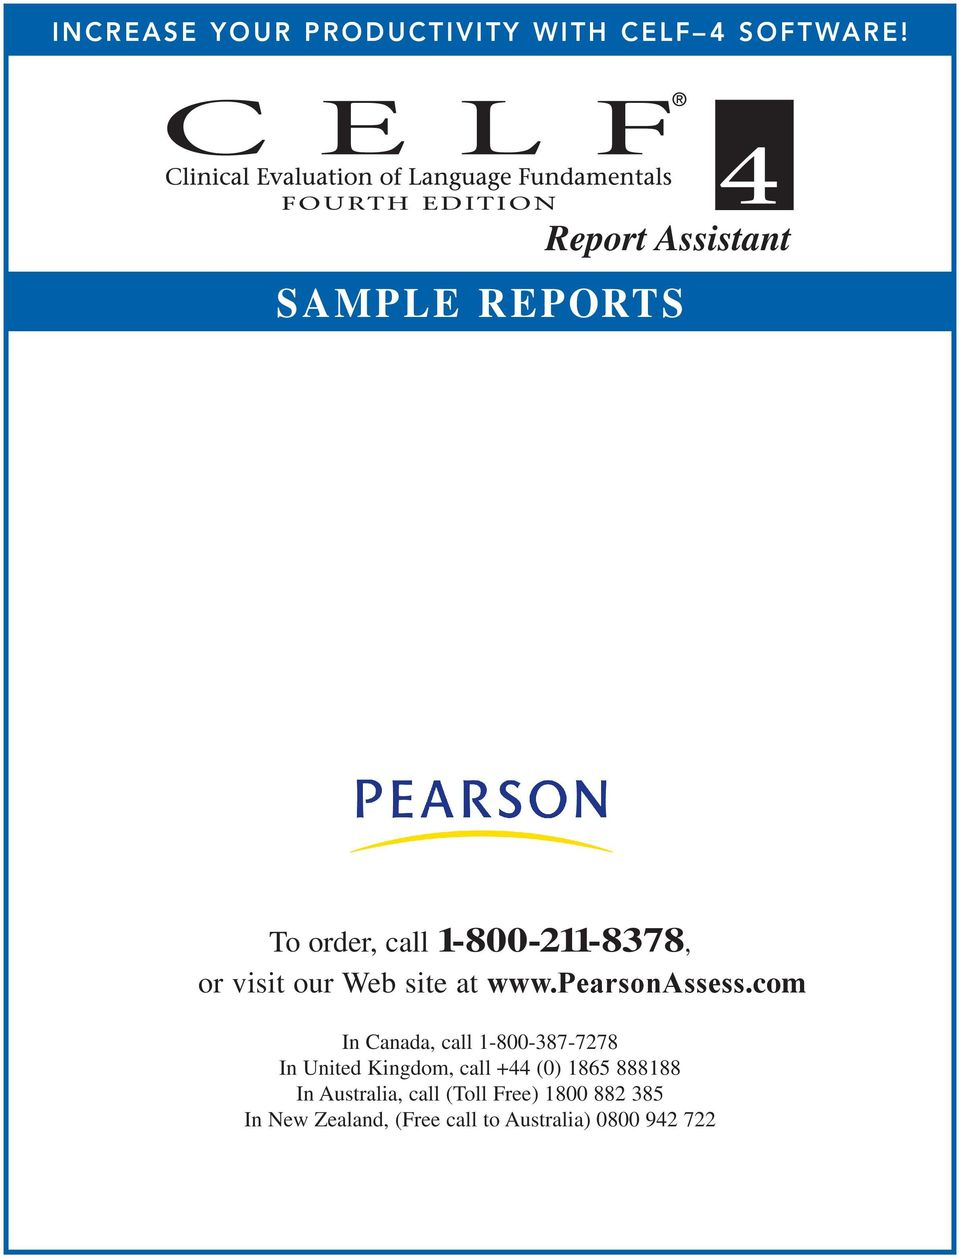 site at www.pearsonassess.